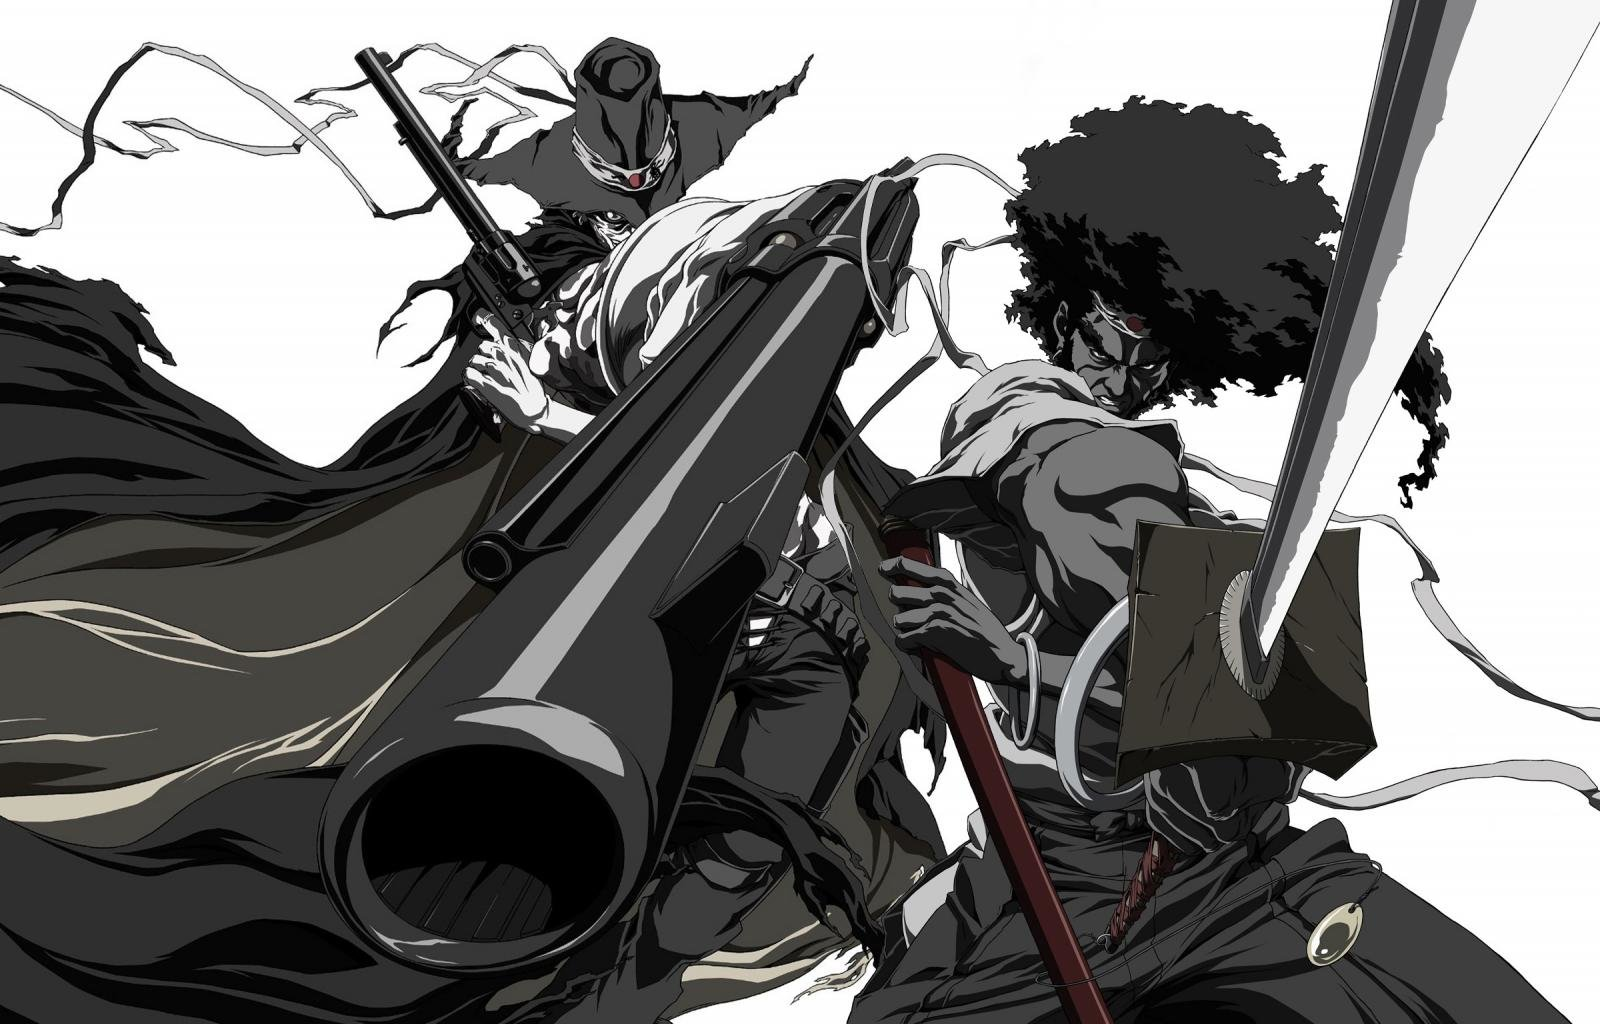 Download hd 1600x1024 Afro Samurai PC background ID:329144 for free